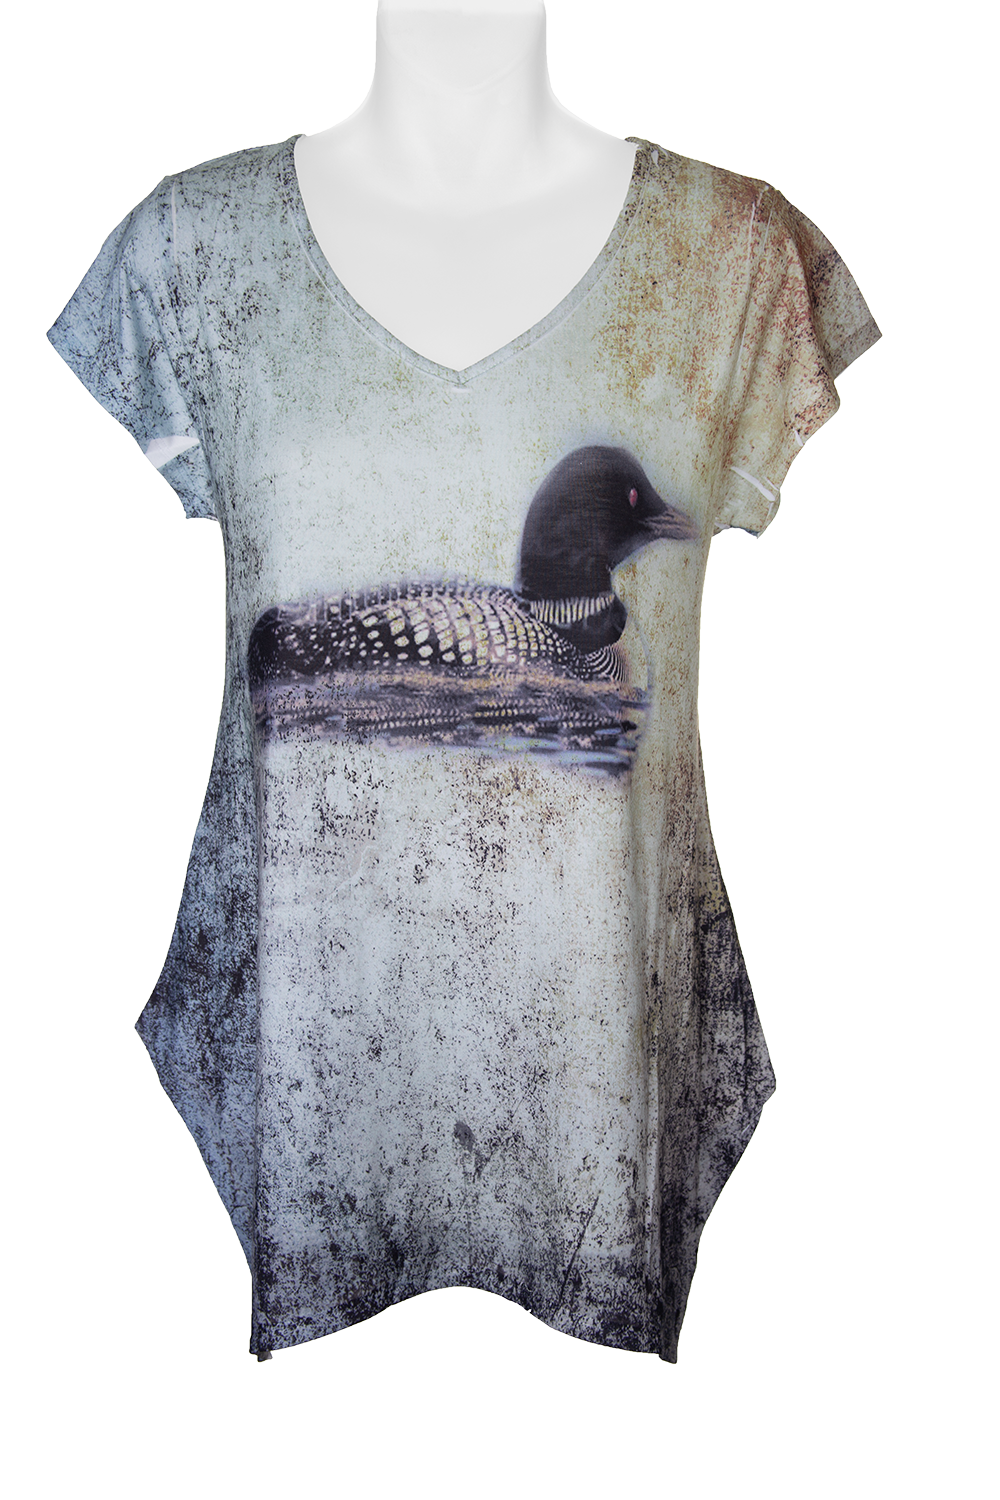 Lonely Loon Fashion T-shirt- Women's earth-tone t-shirt sublimated with art of loon on the lake